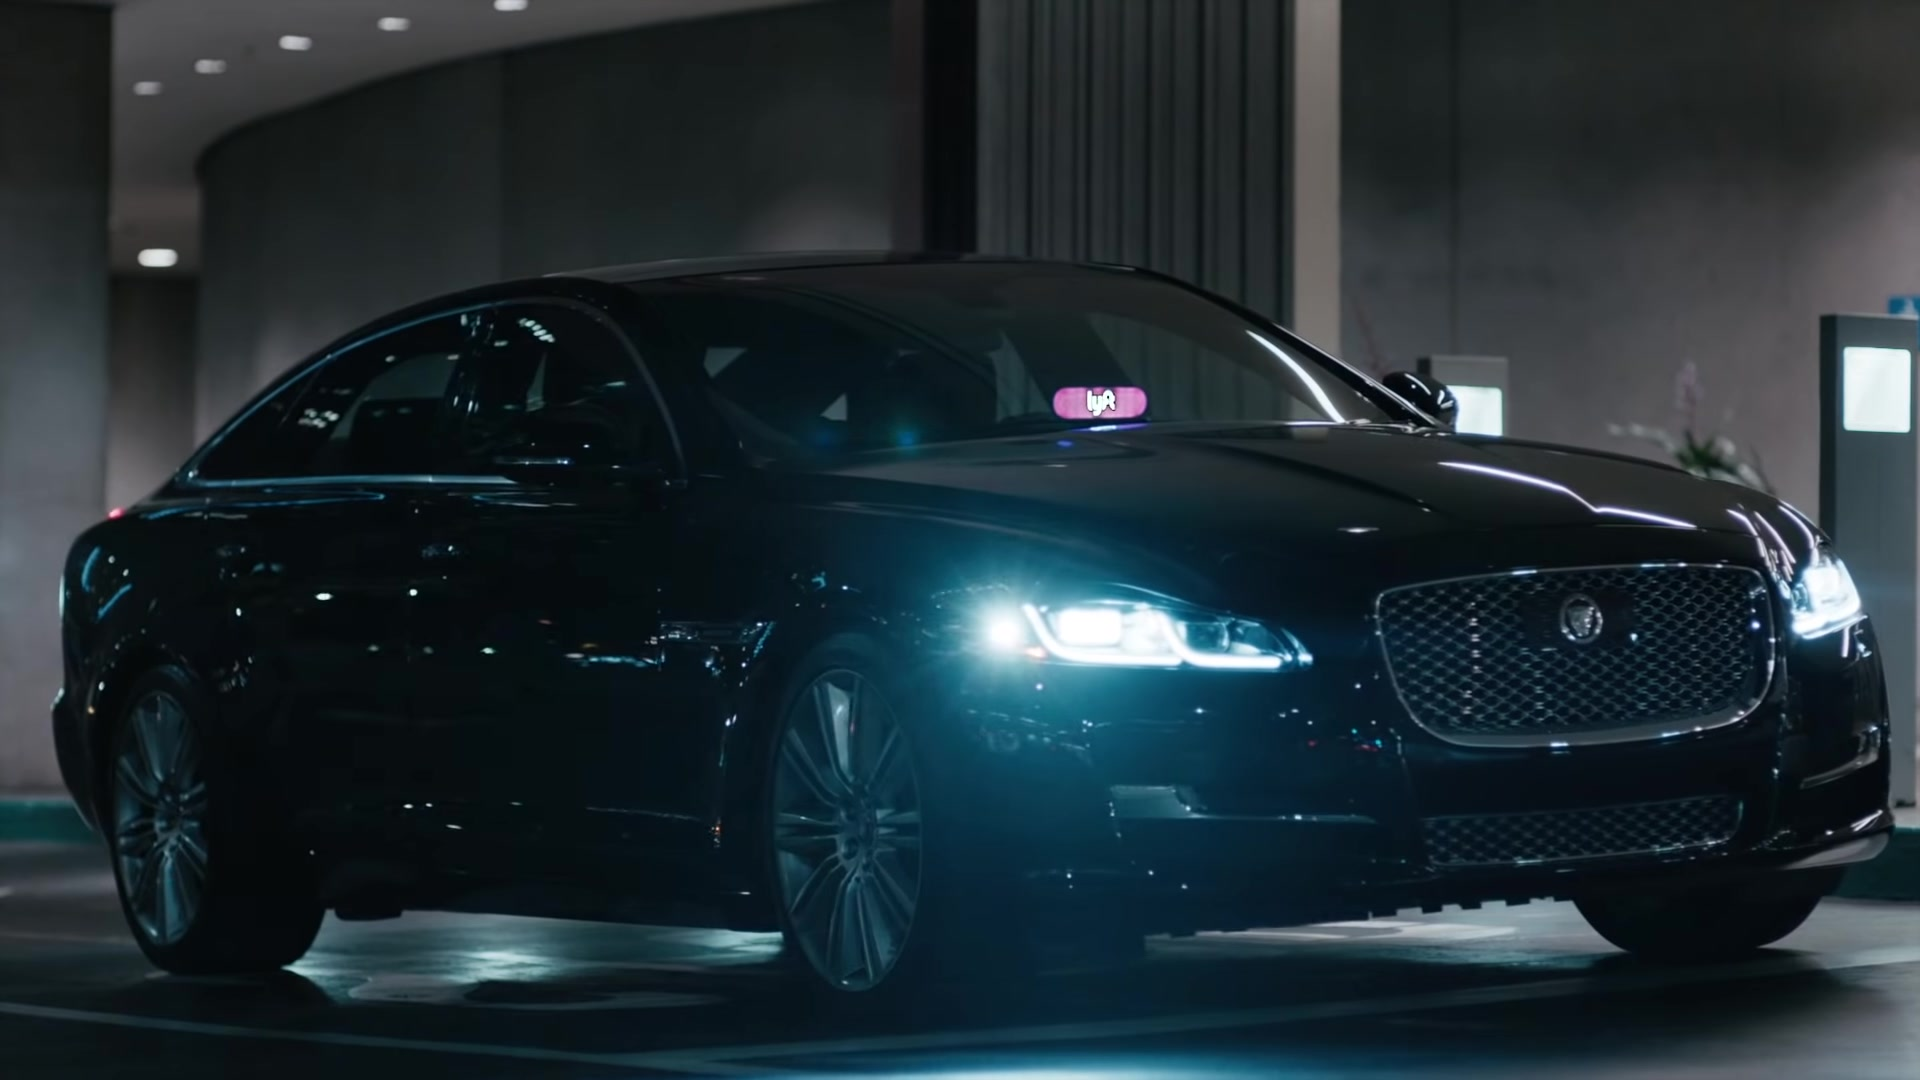 Jaguar Car And Lyft Taxi Service Sign In Lost In Japan By